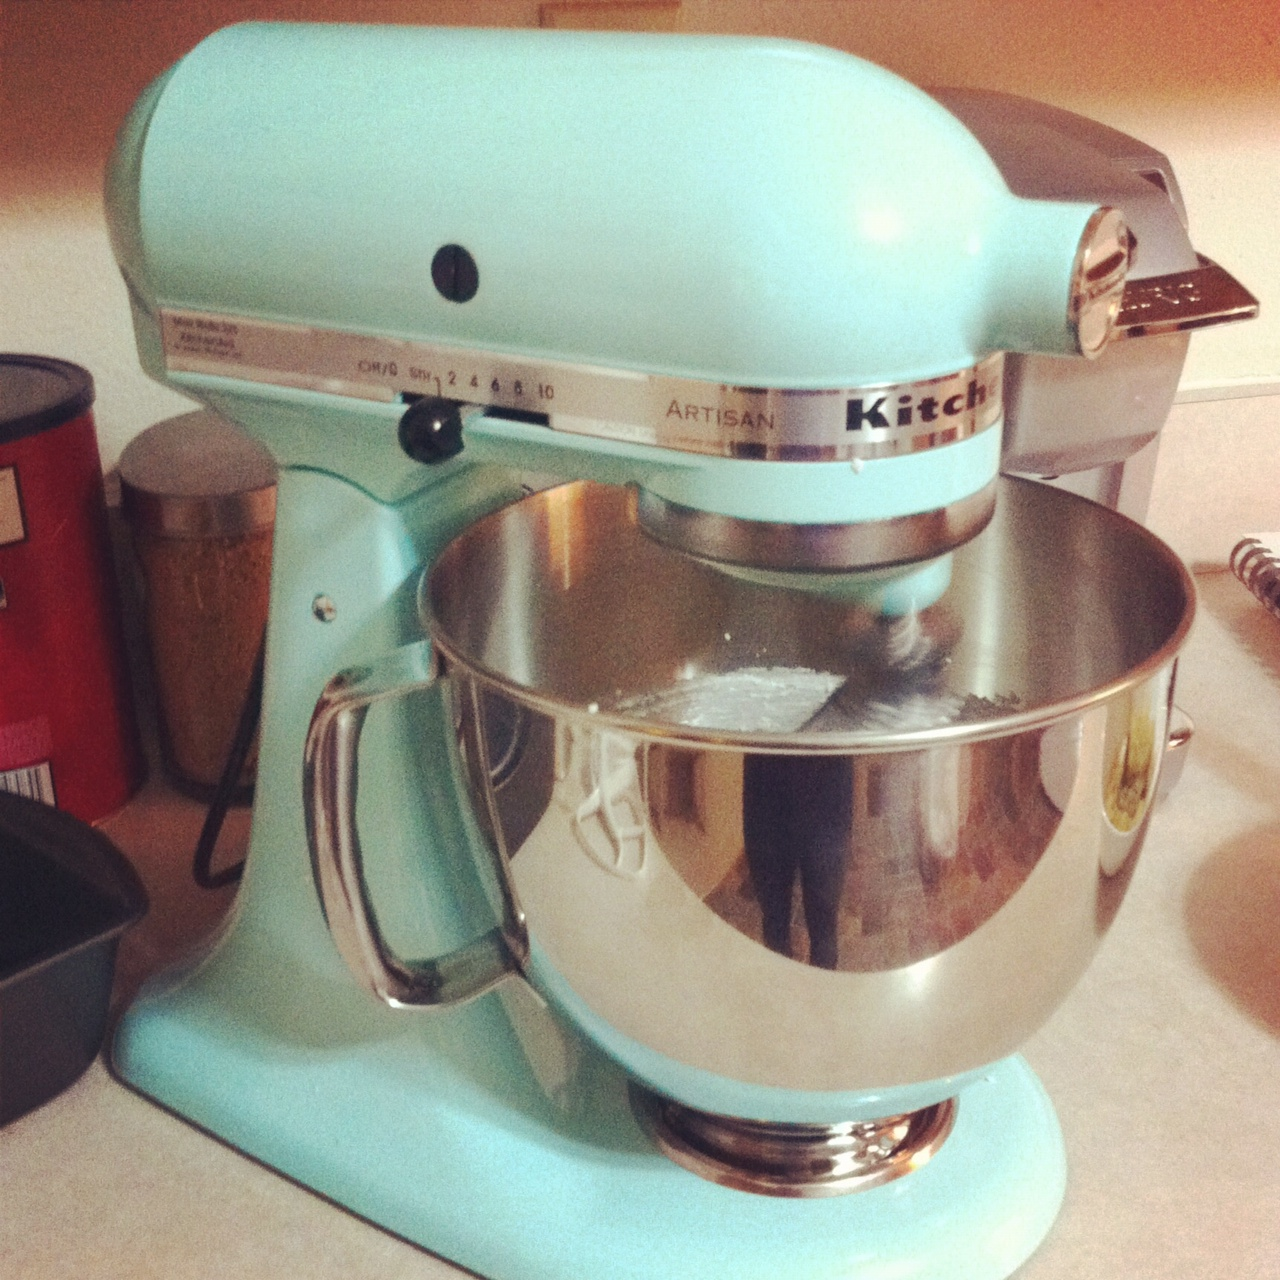 Kitchenaid artisan mixer colours – Best Apps and Shareware